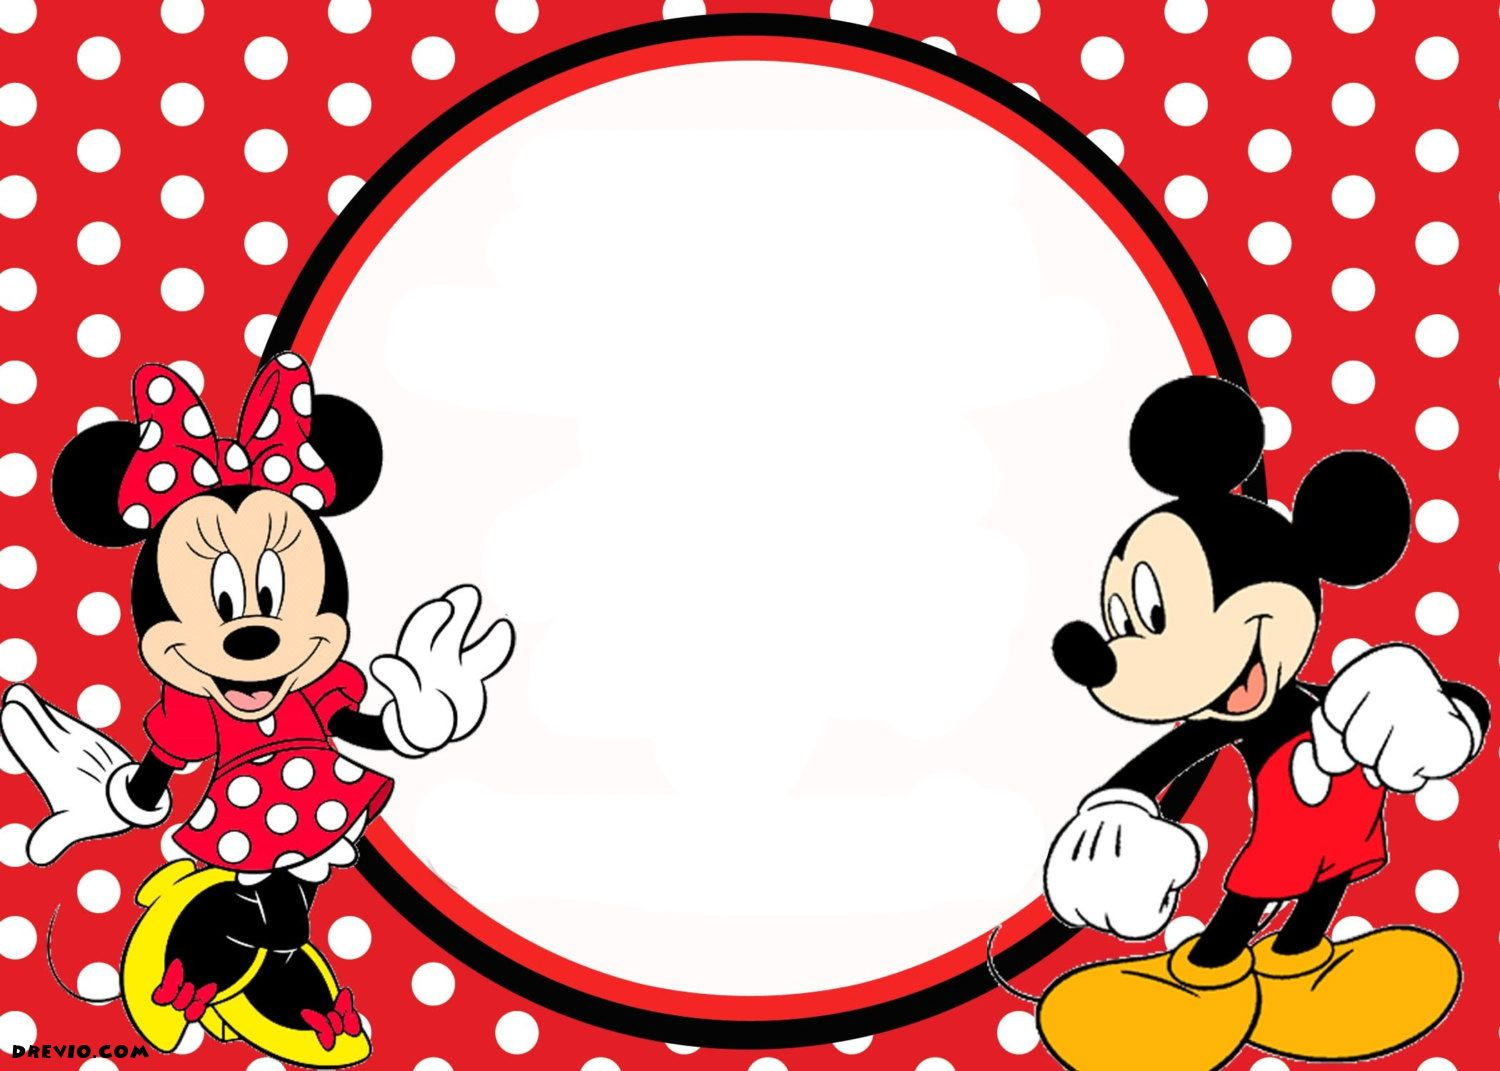 FREE Printable Mickey Mouse Invitations Exclusive Selection